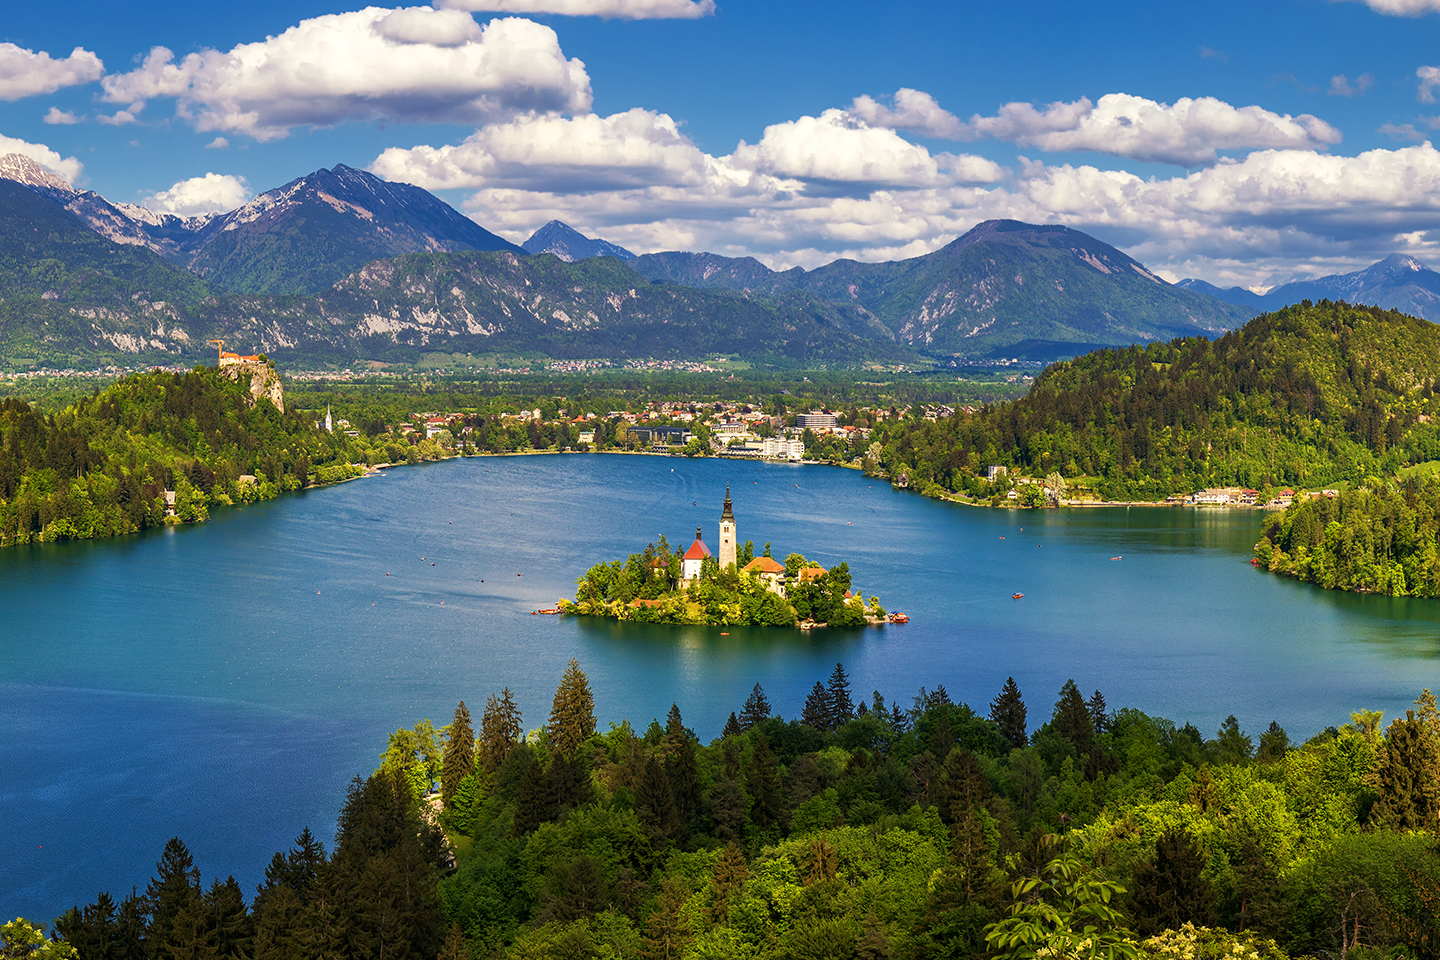 An aerial view of Lake Bled in Slovenia, with a church on an island in the middle and mountains in the distance.